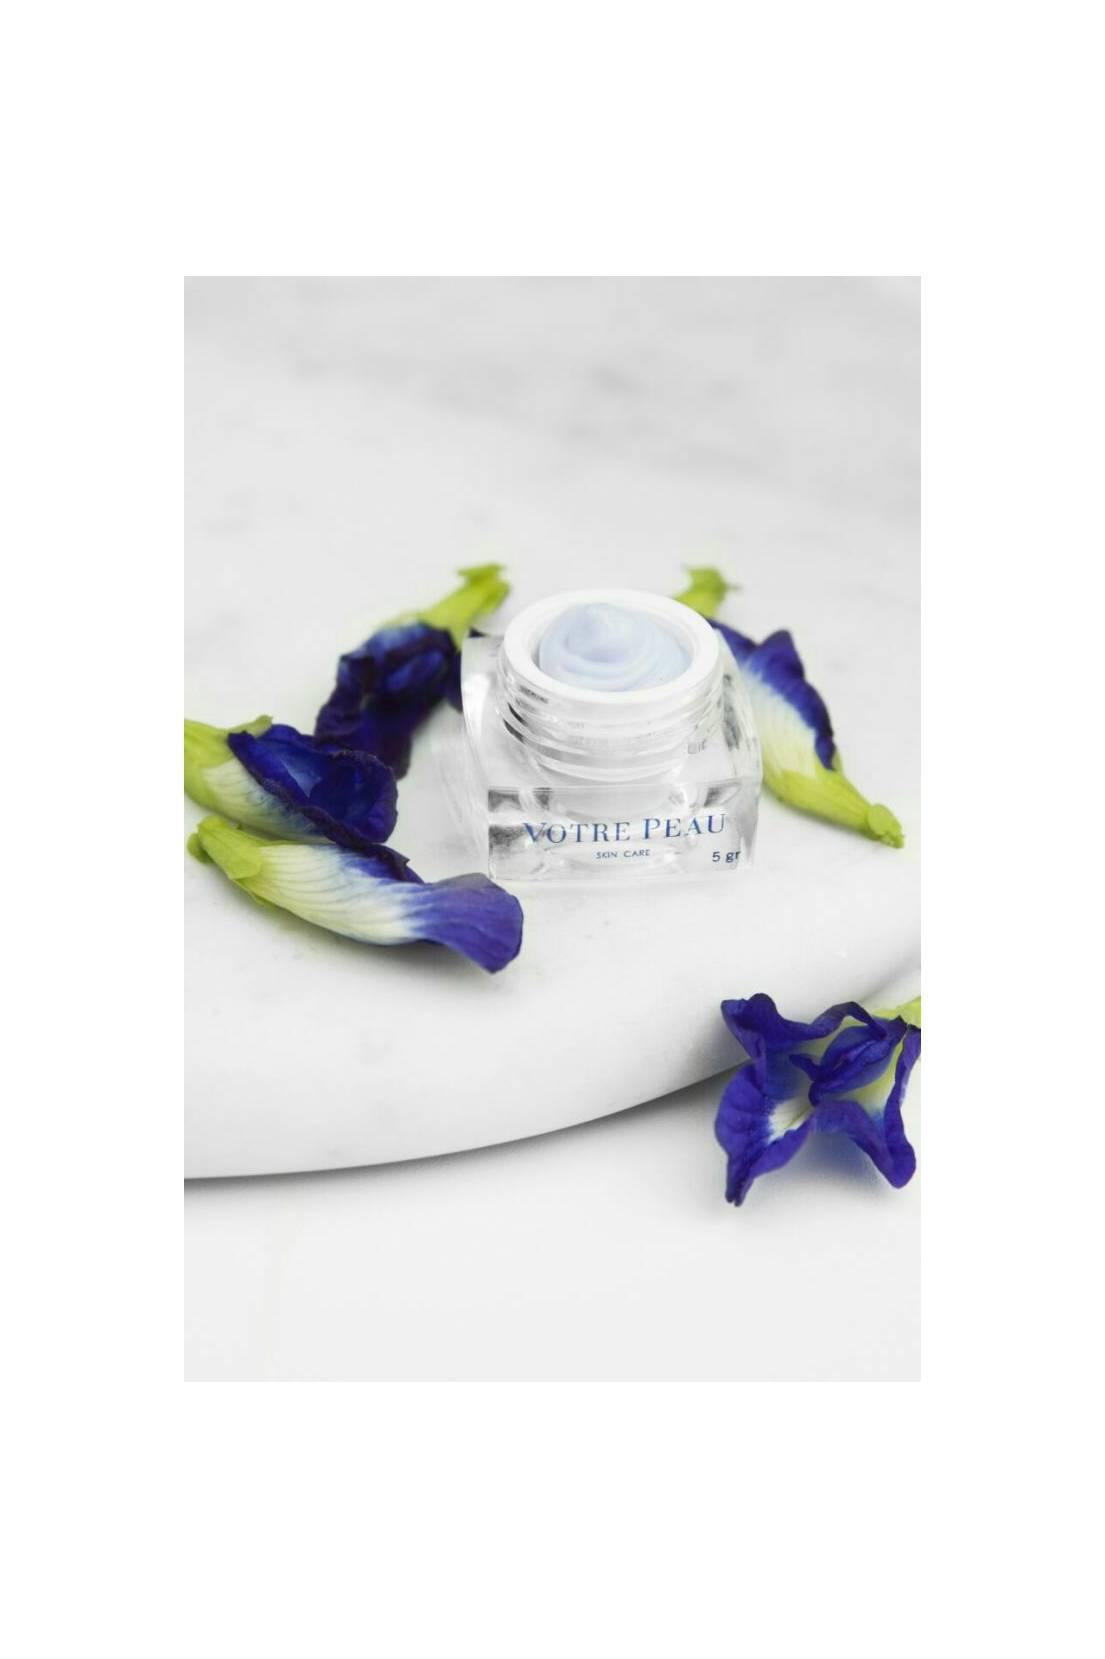 VOTRE PEAU MAGIC BLUE PEA FLOWER EYE CREAM 5 GR